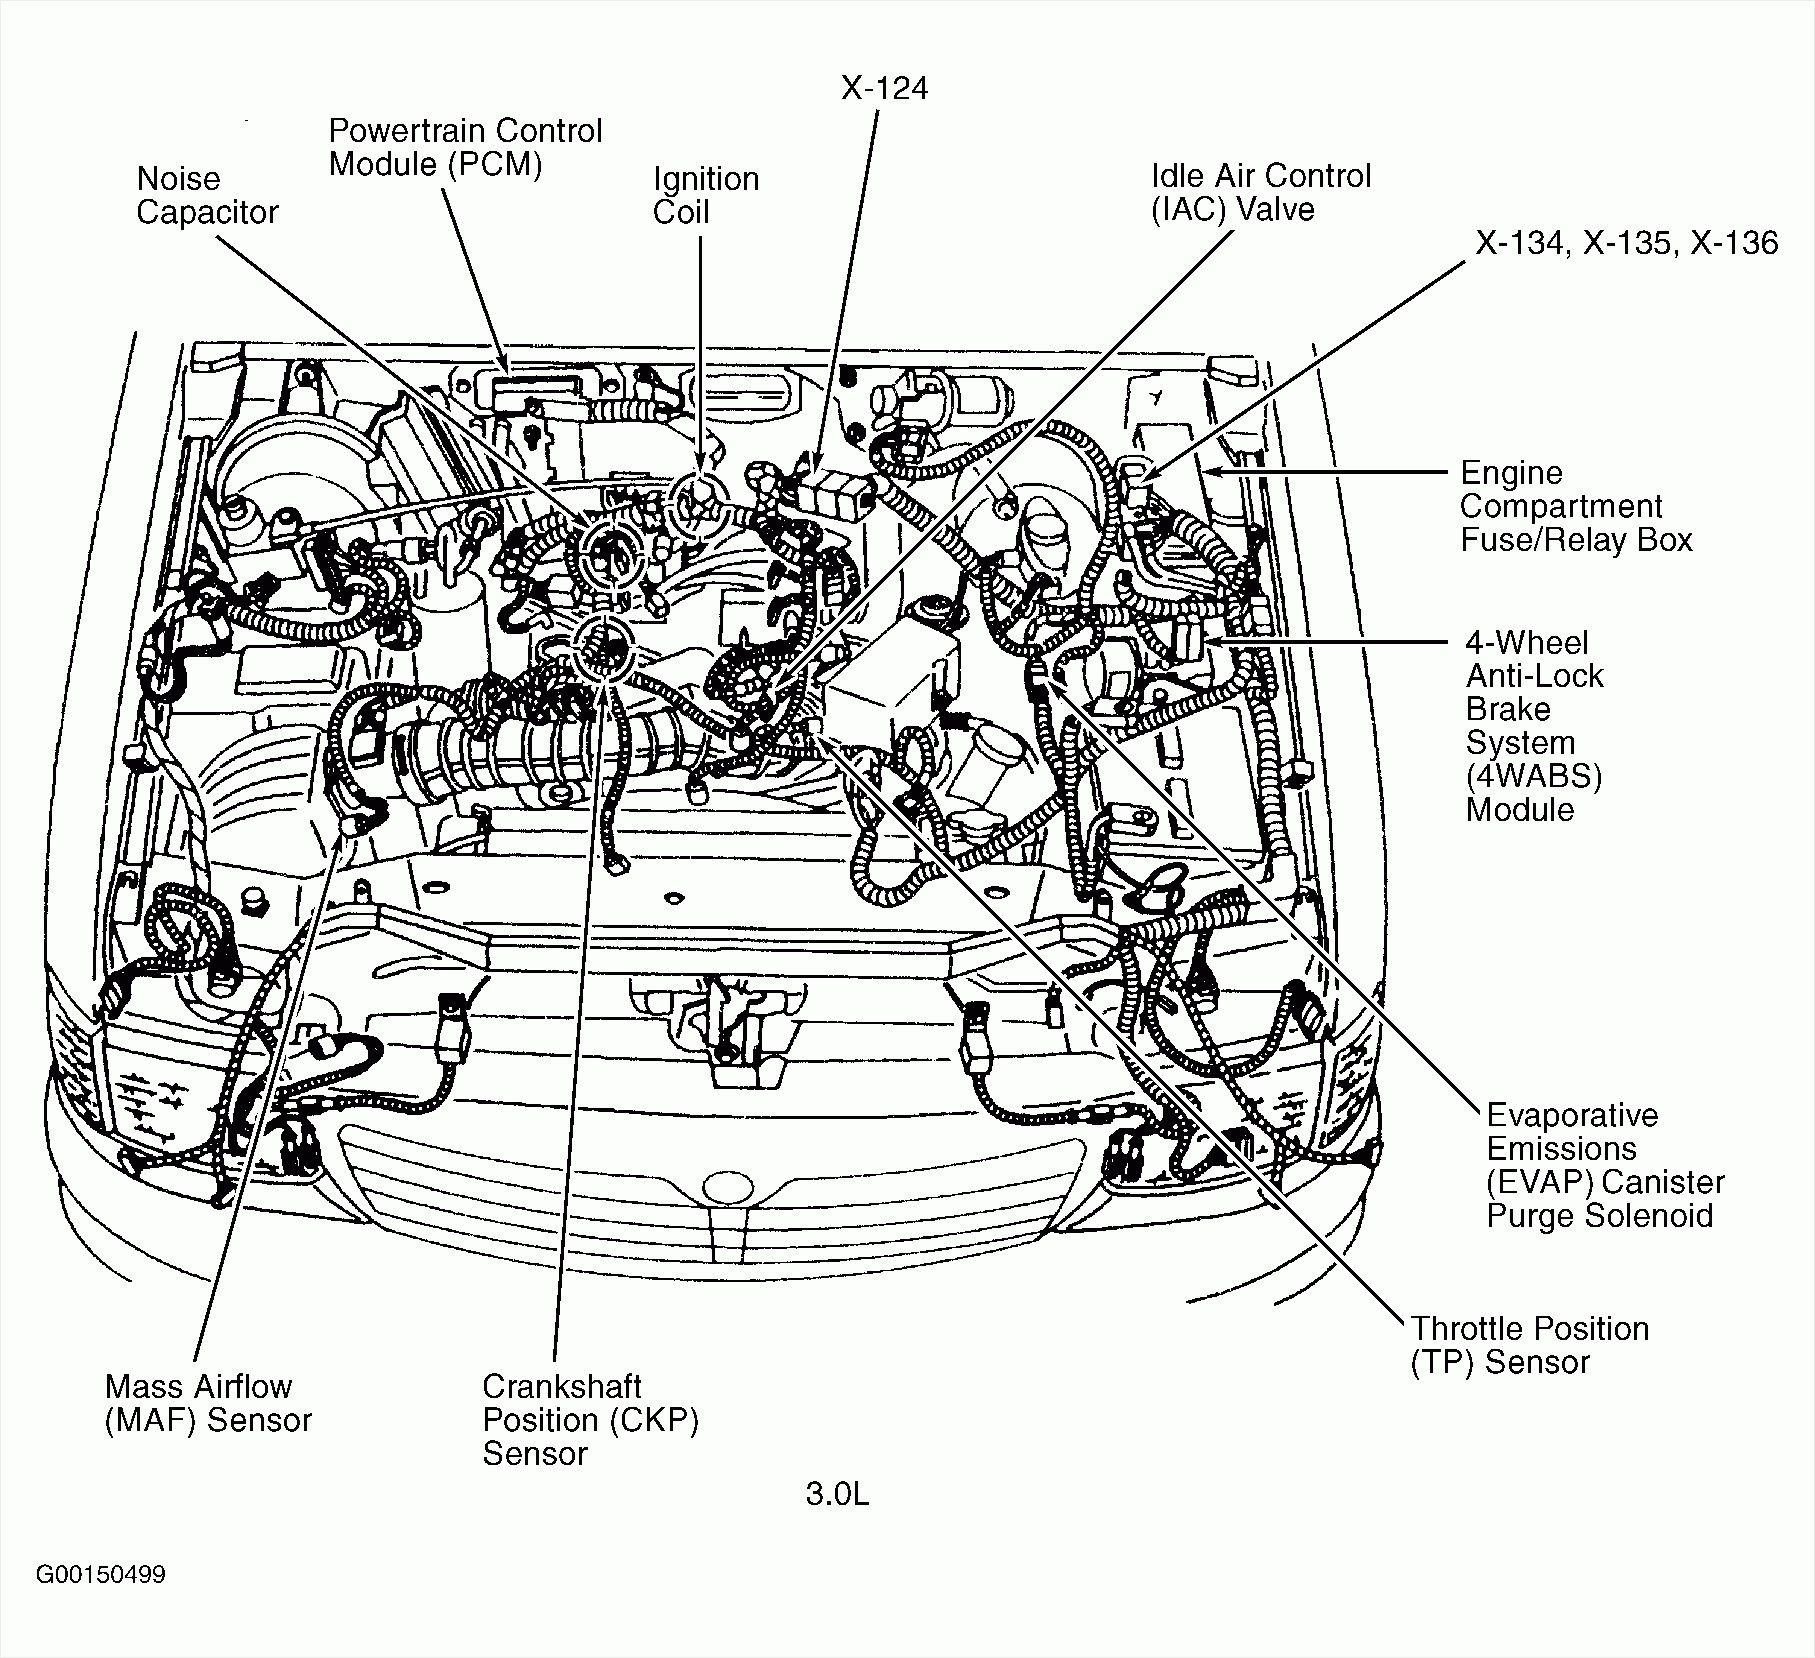 Ford Focus Engine Diagram 2001 1985 2 3l ford Engine Diagram Wiring Diagram 500